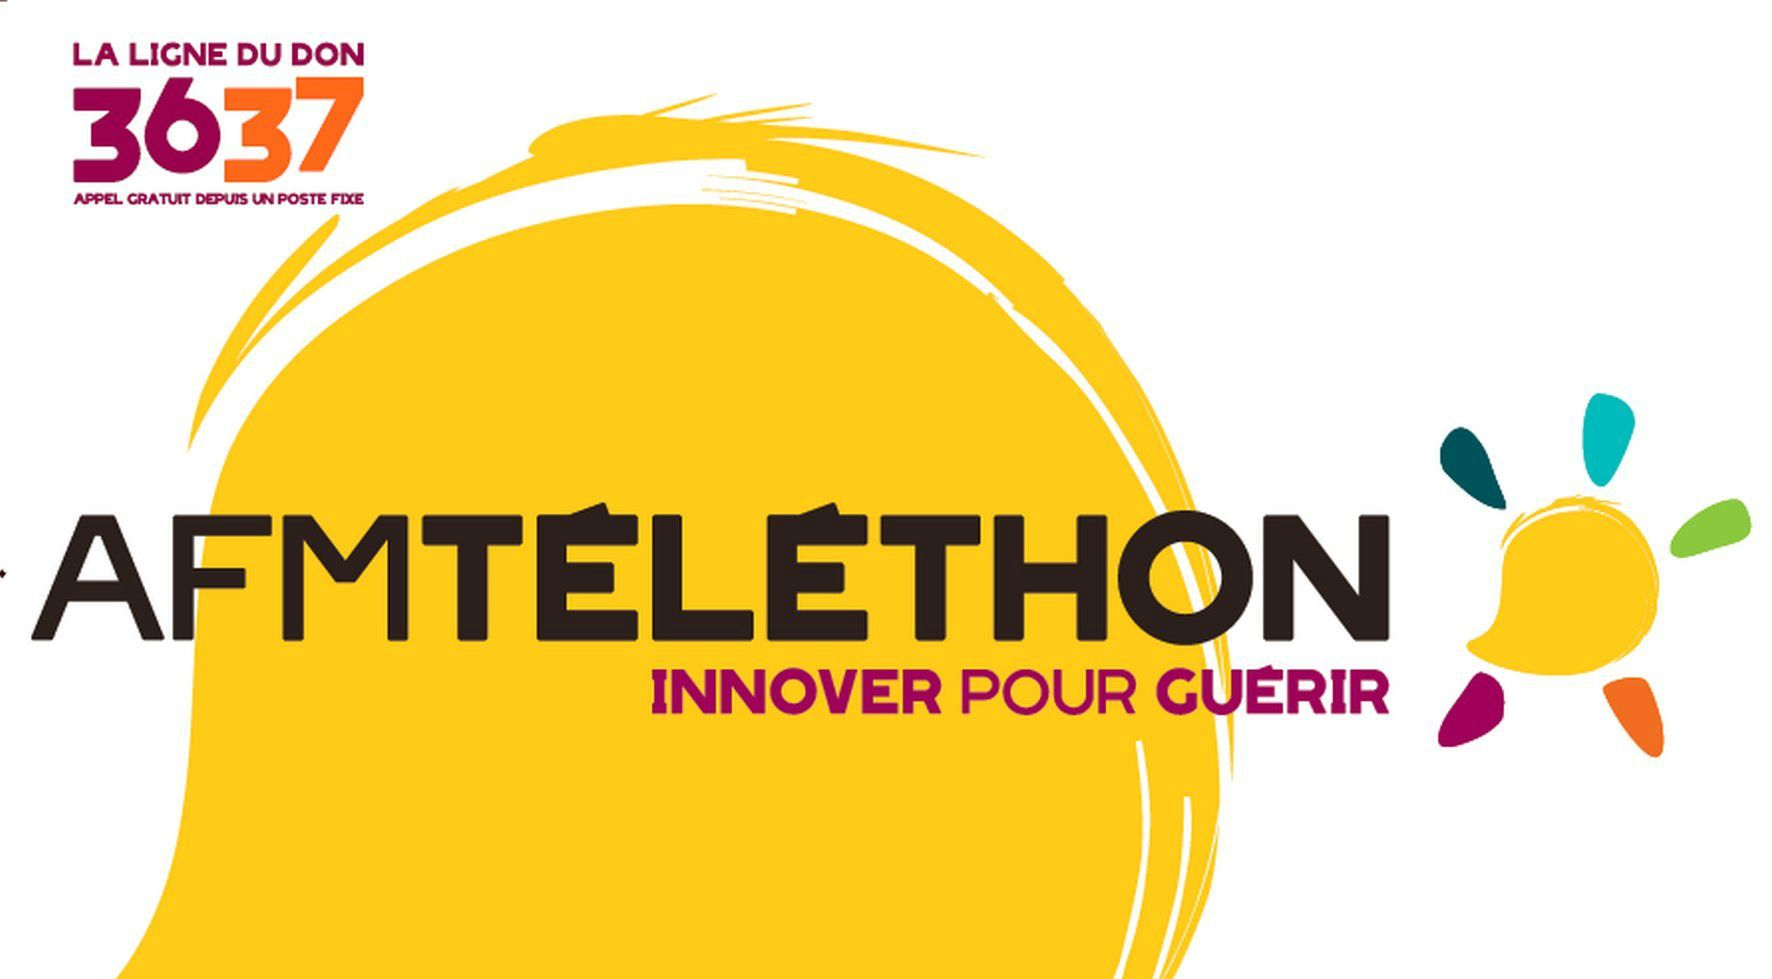 Photo of VAUVERT Le Téléthon et son programme